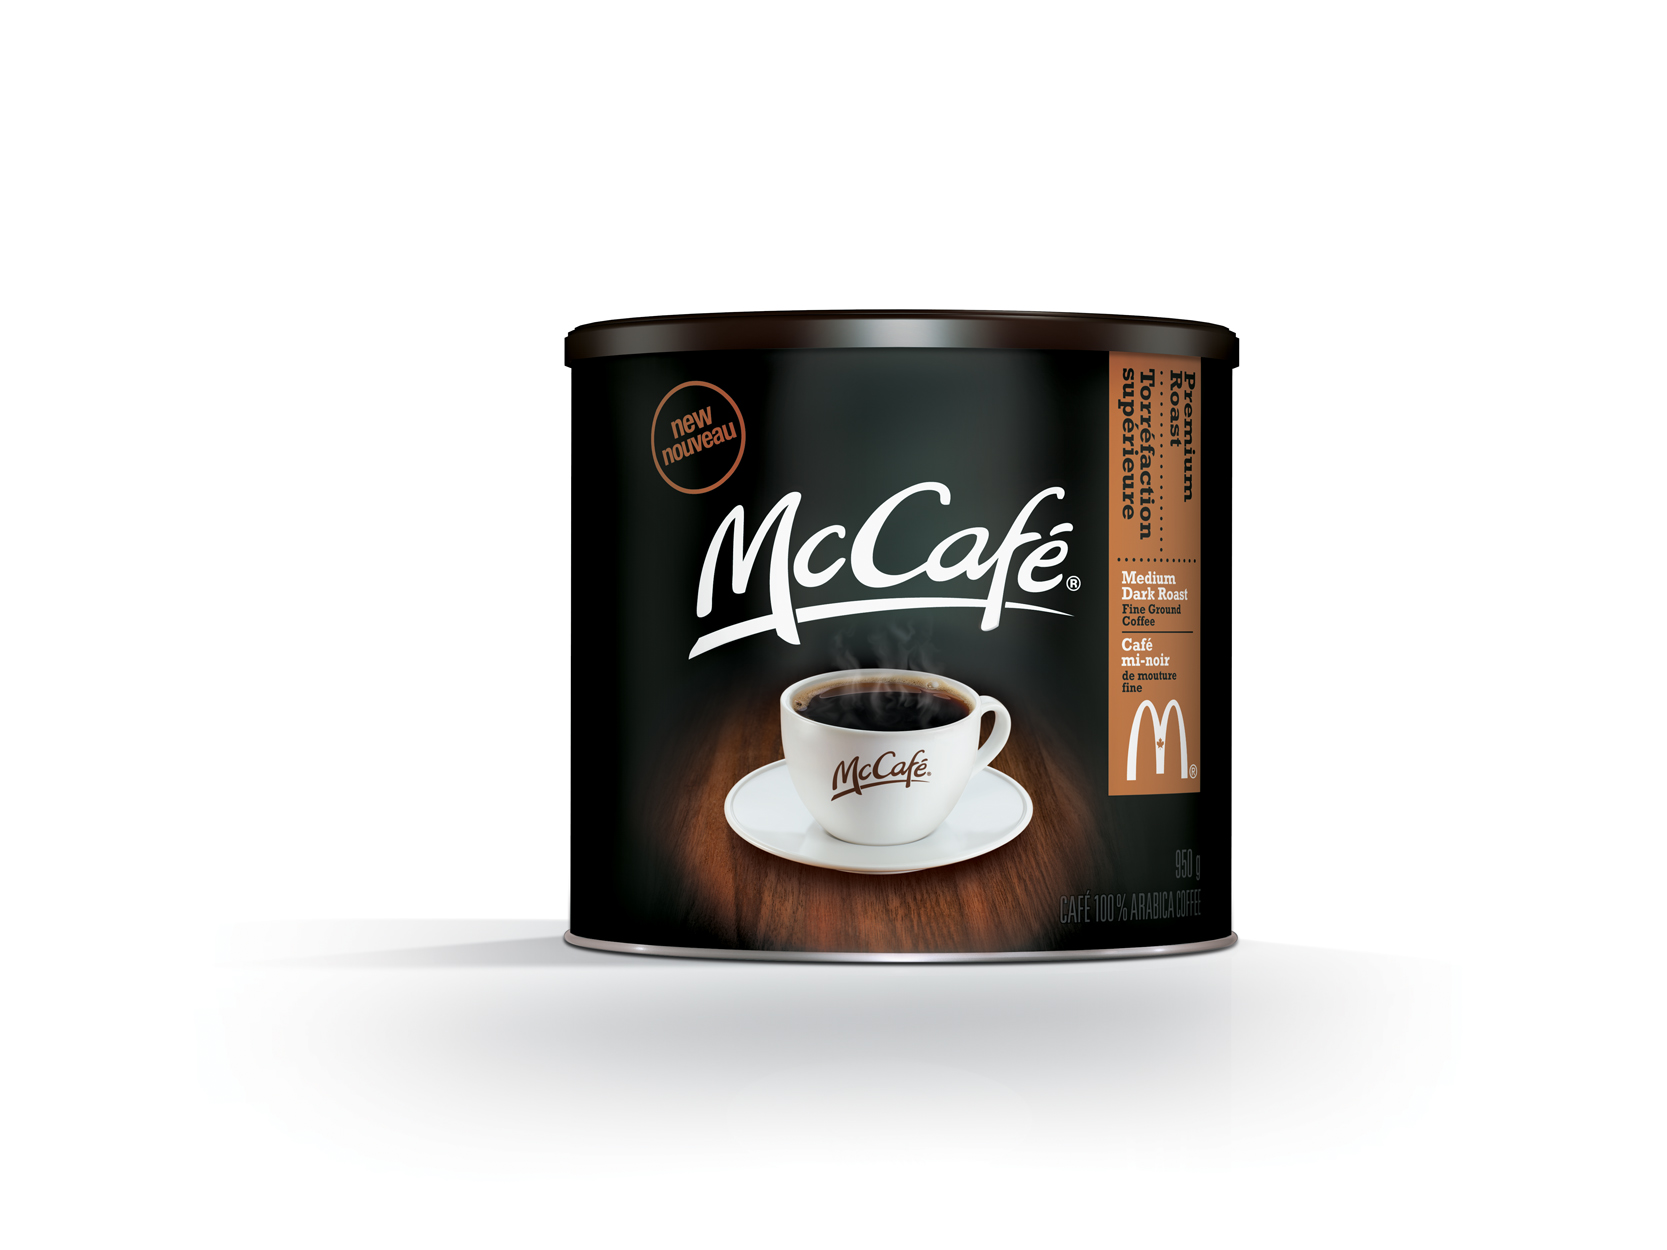 mccafe marketing plan Mccafe: swot analysis essay swot analysis of mccafe mccafe has a number of strengths as it is a part of mcdonalds which is the number one fast food company in the us and offers diverse services in 121 countries around the world, with annual sales of $ 147 billion and highest industry profit margin of 124%.